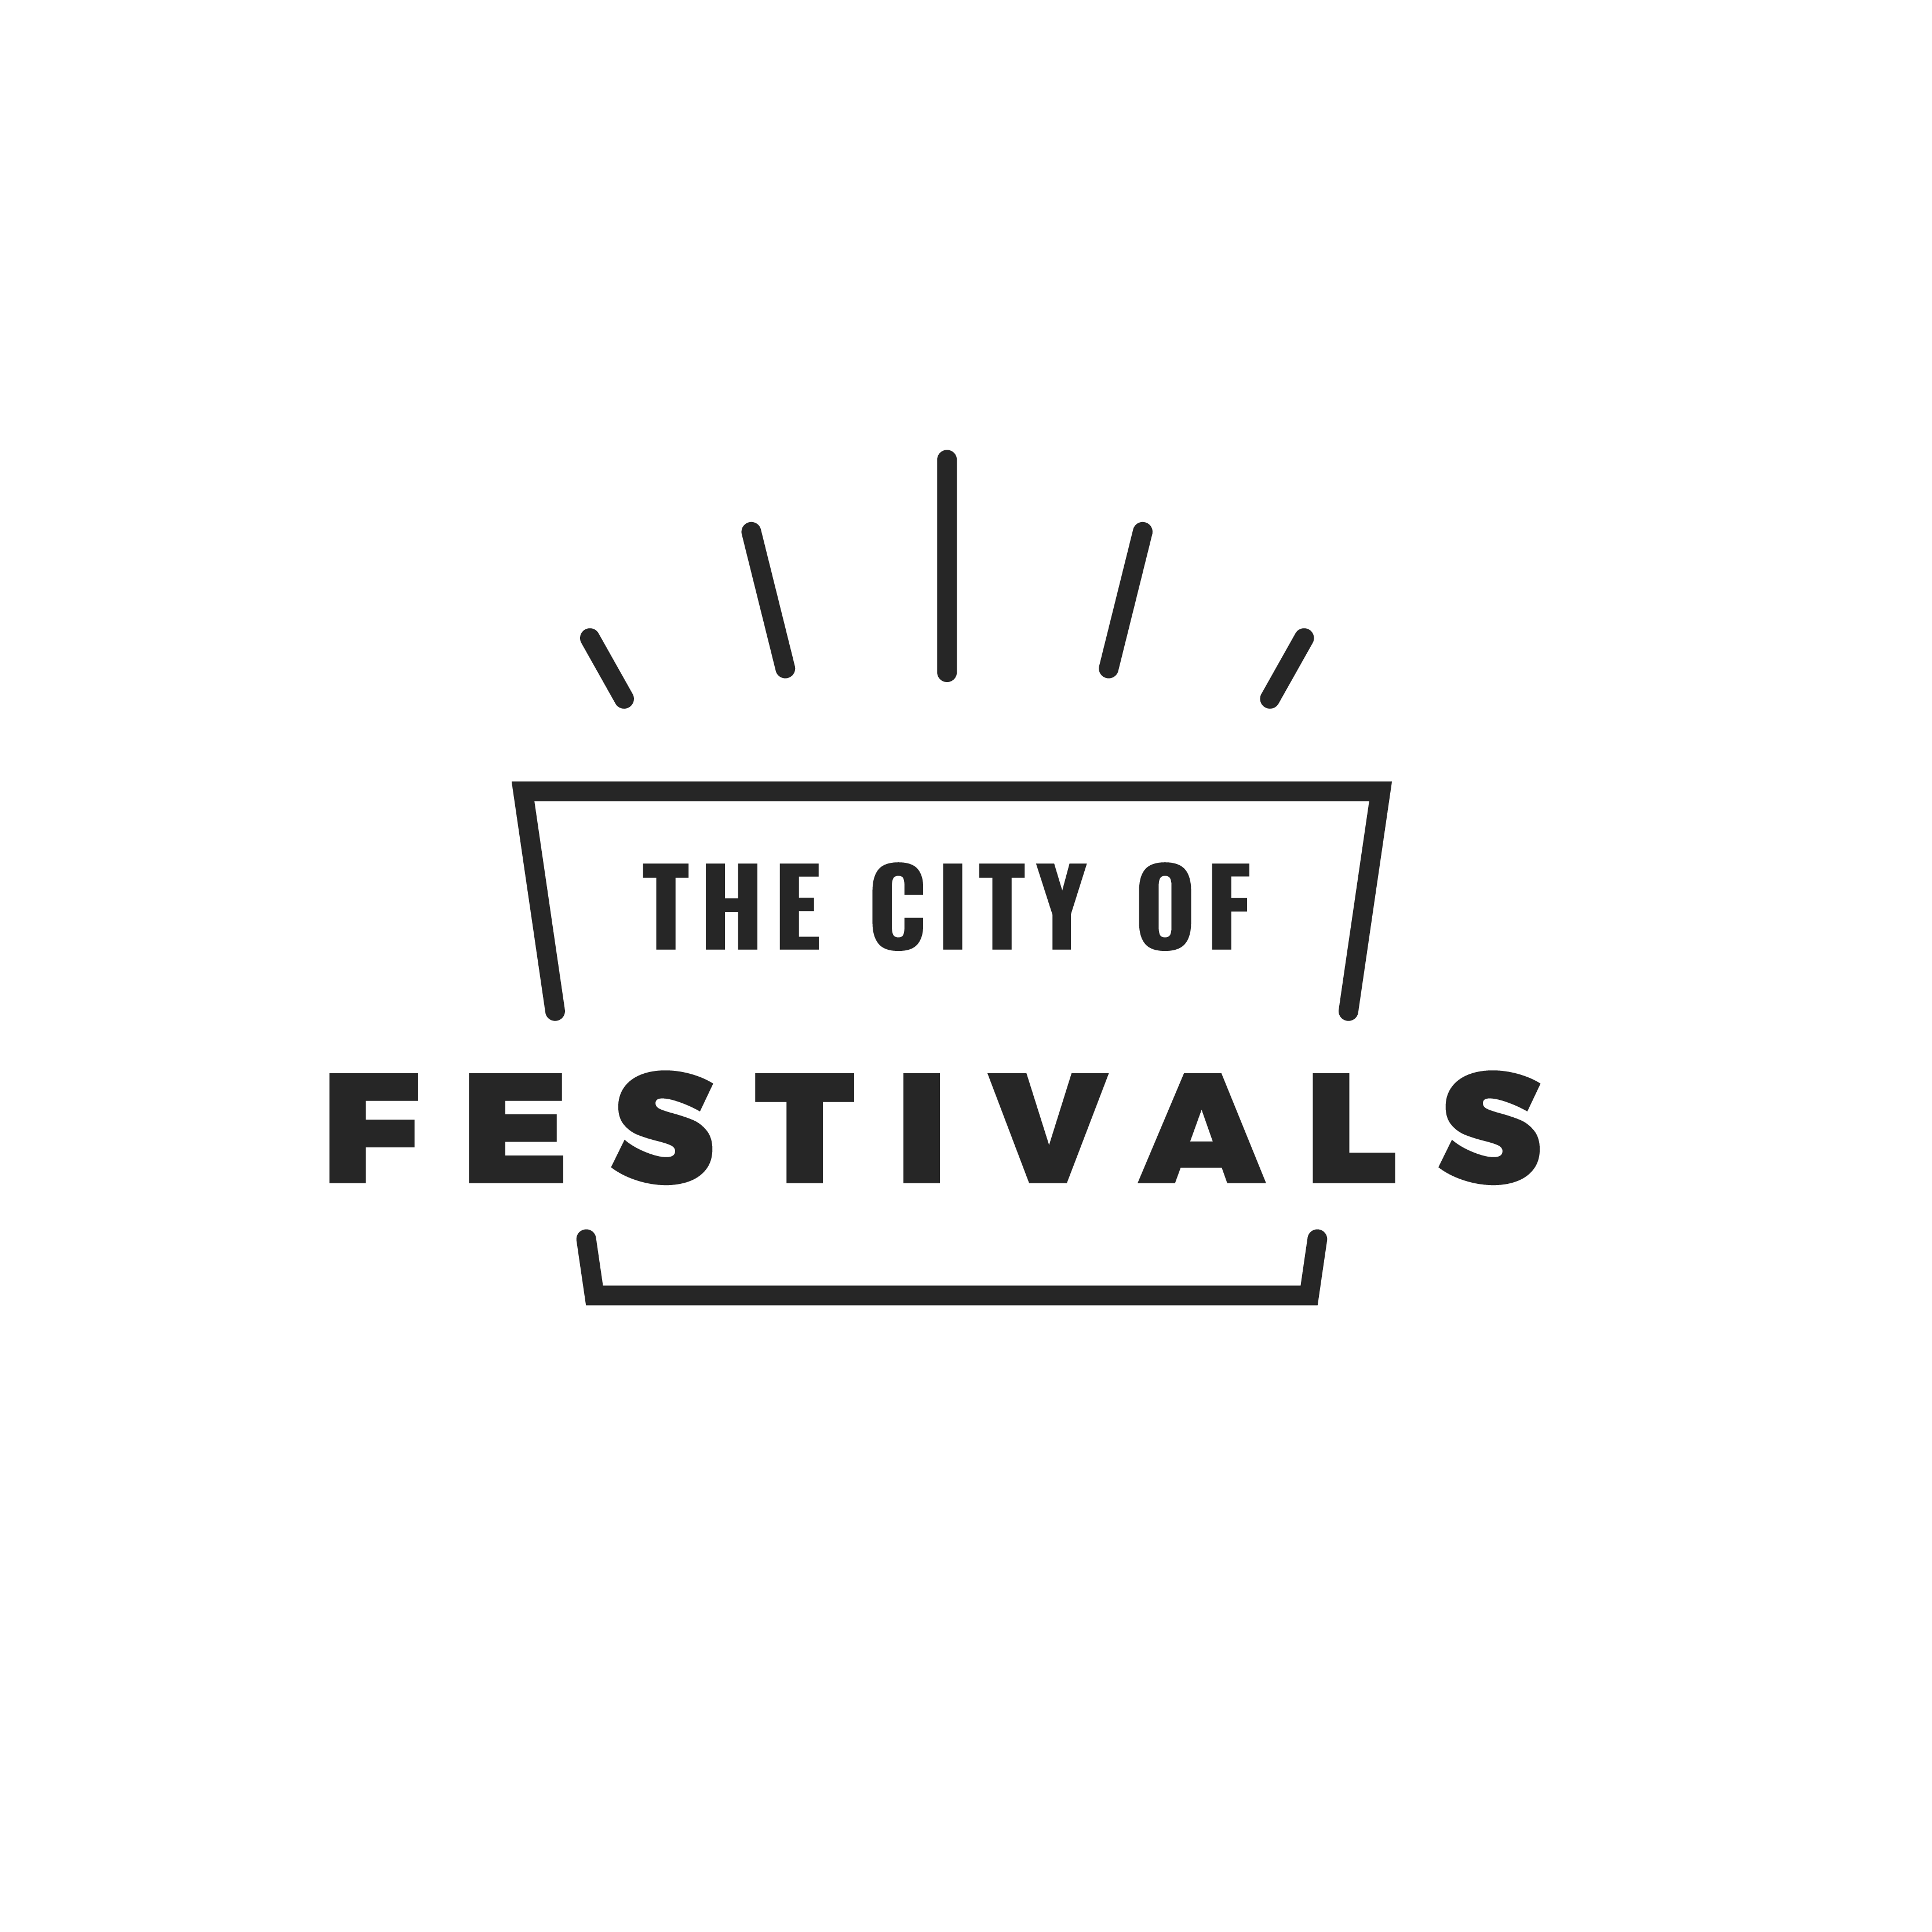 City of Festivals